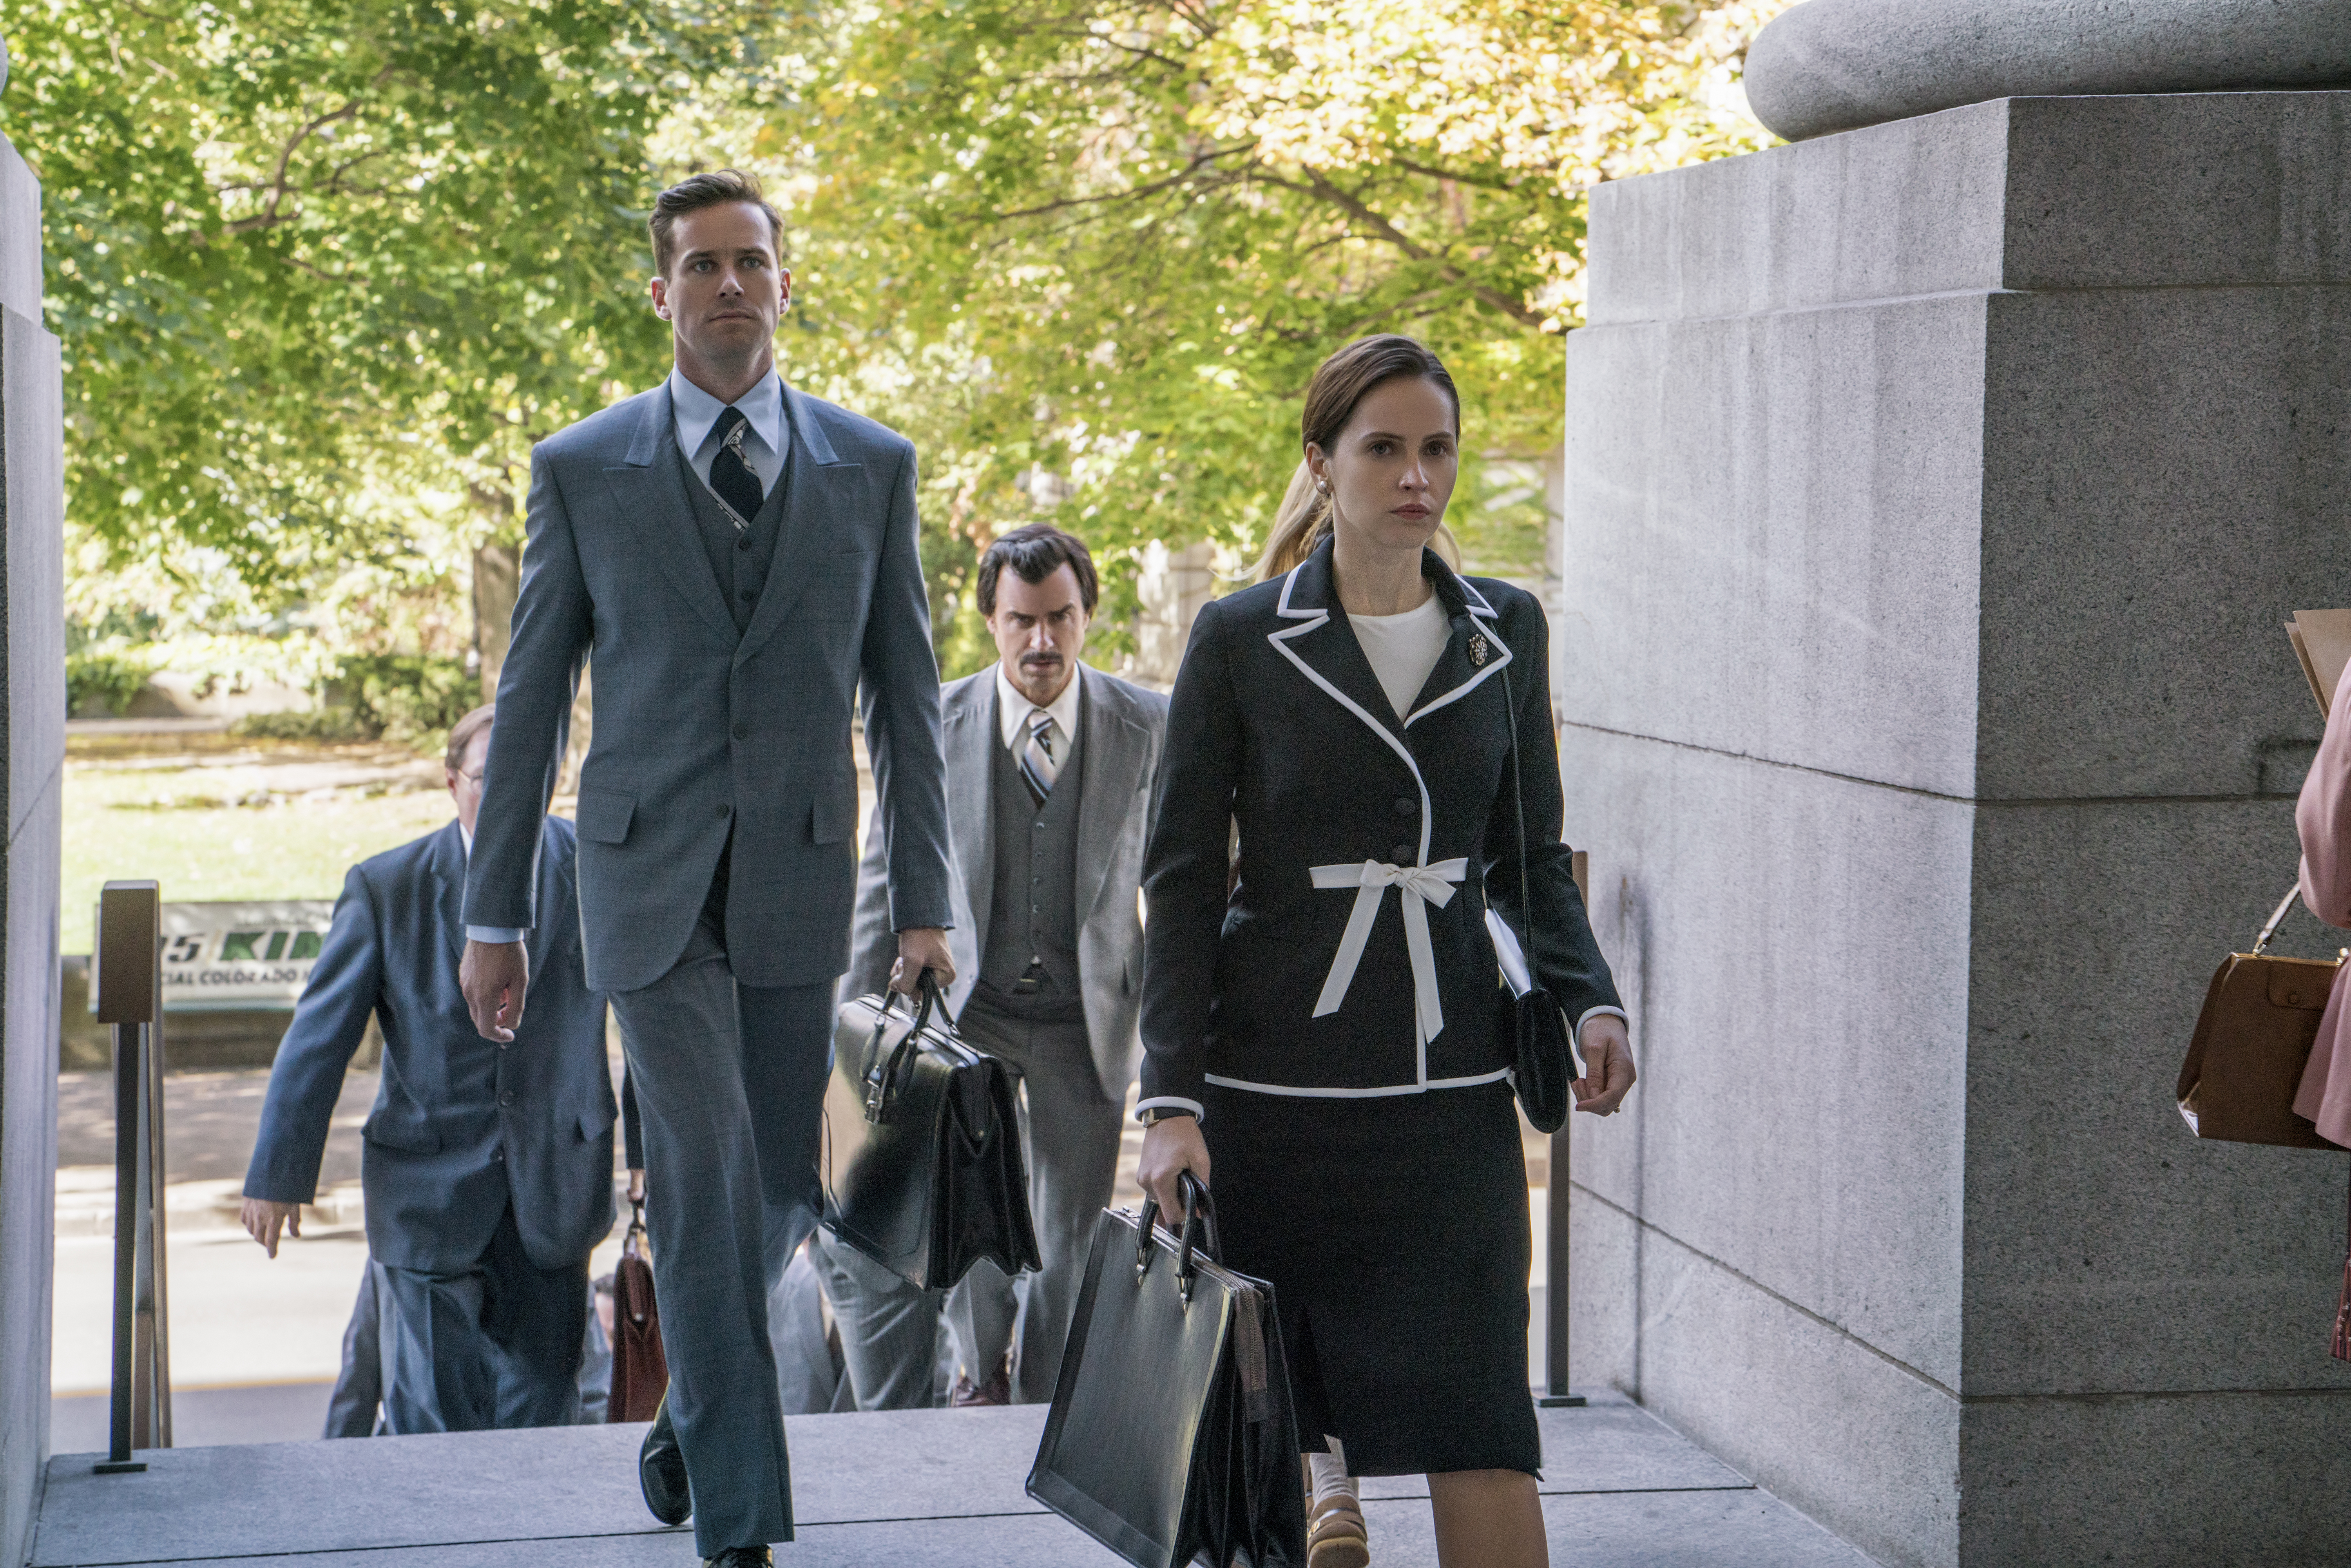 (l to r.) Armie Hammer as Marty Ginsburg, Justin Theroux as Melvin Wulf, and Felicity Jones as Ruth Bader Ginsburg.